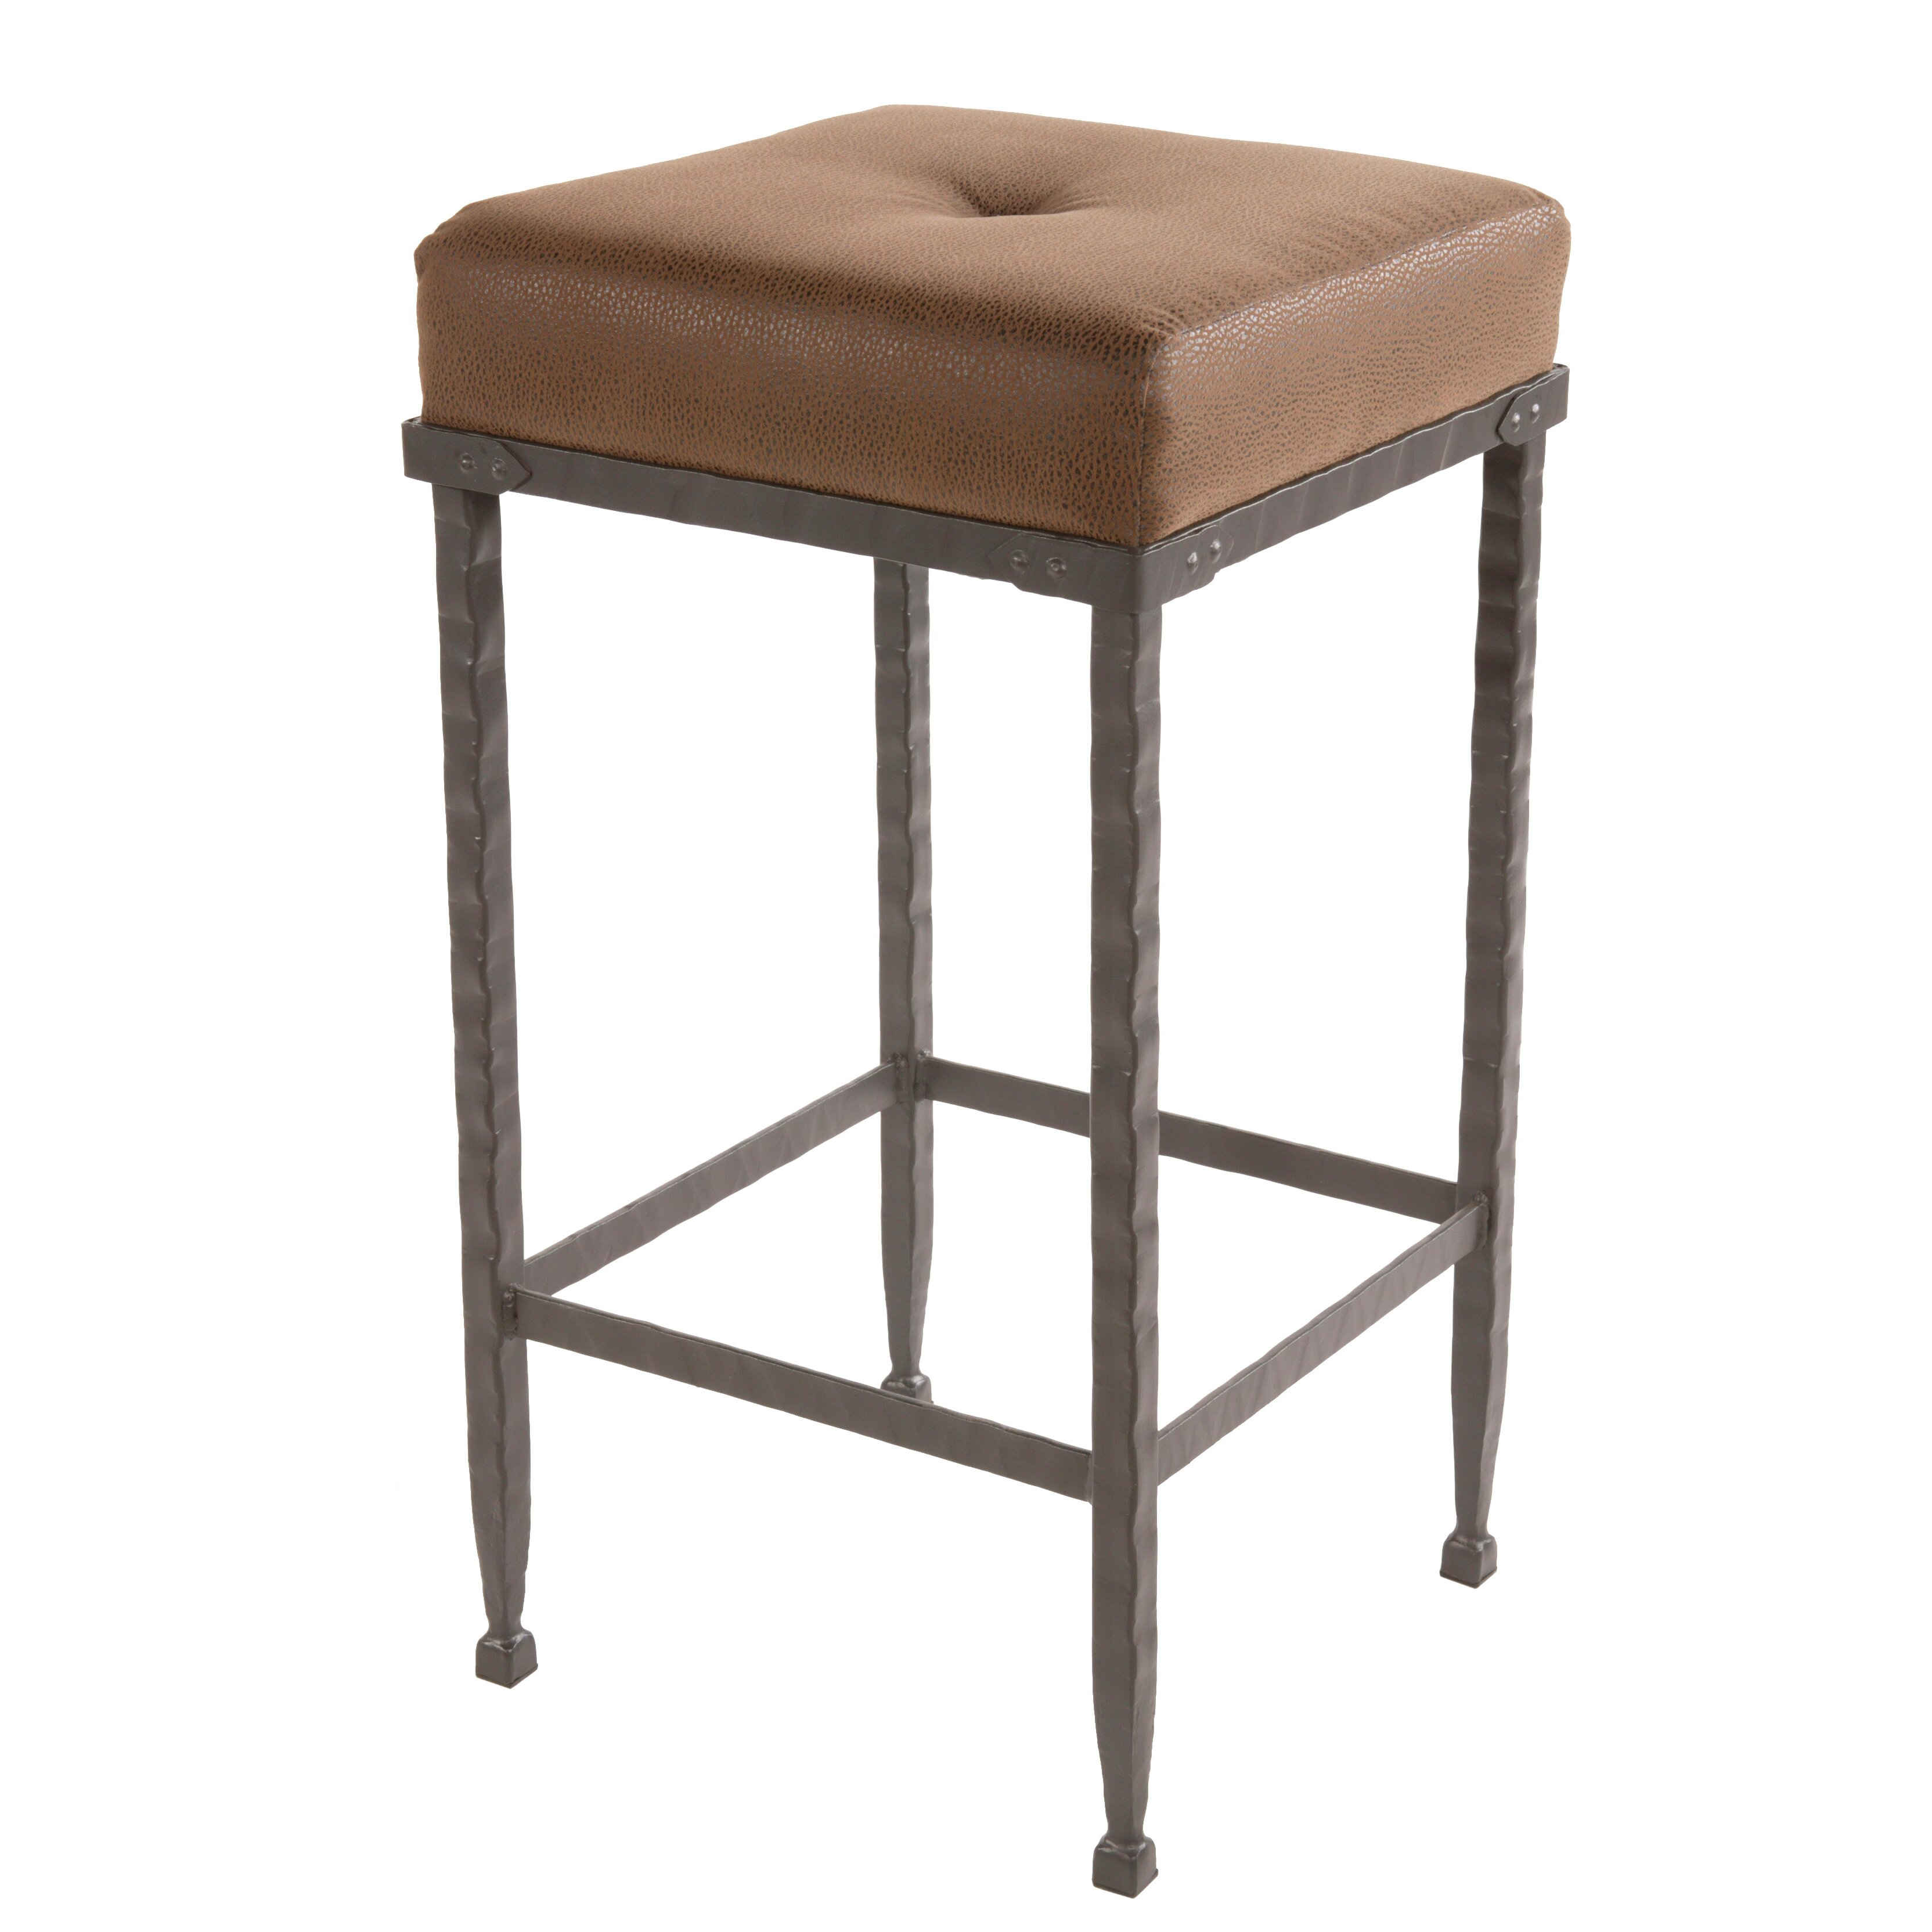 Stone County Ironworks Forest Hill 25 Quot Bar Stool Wayfair Ca